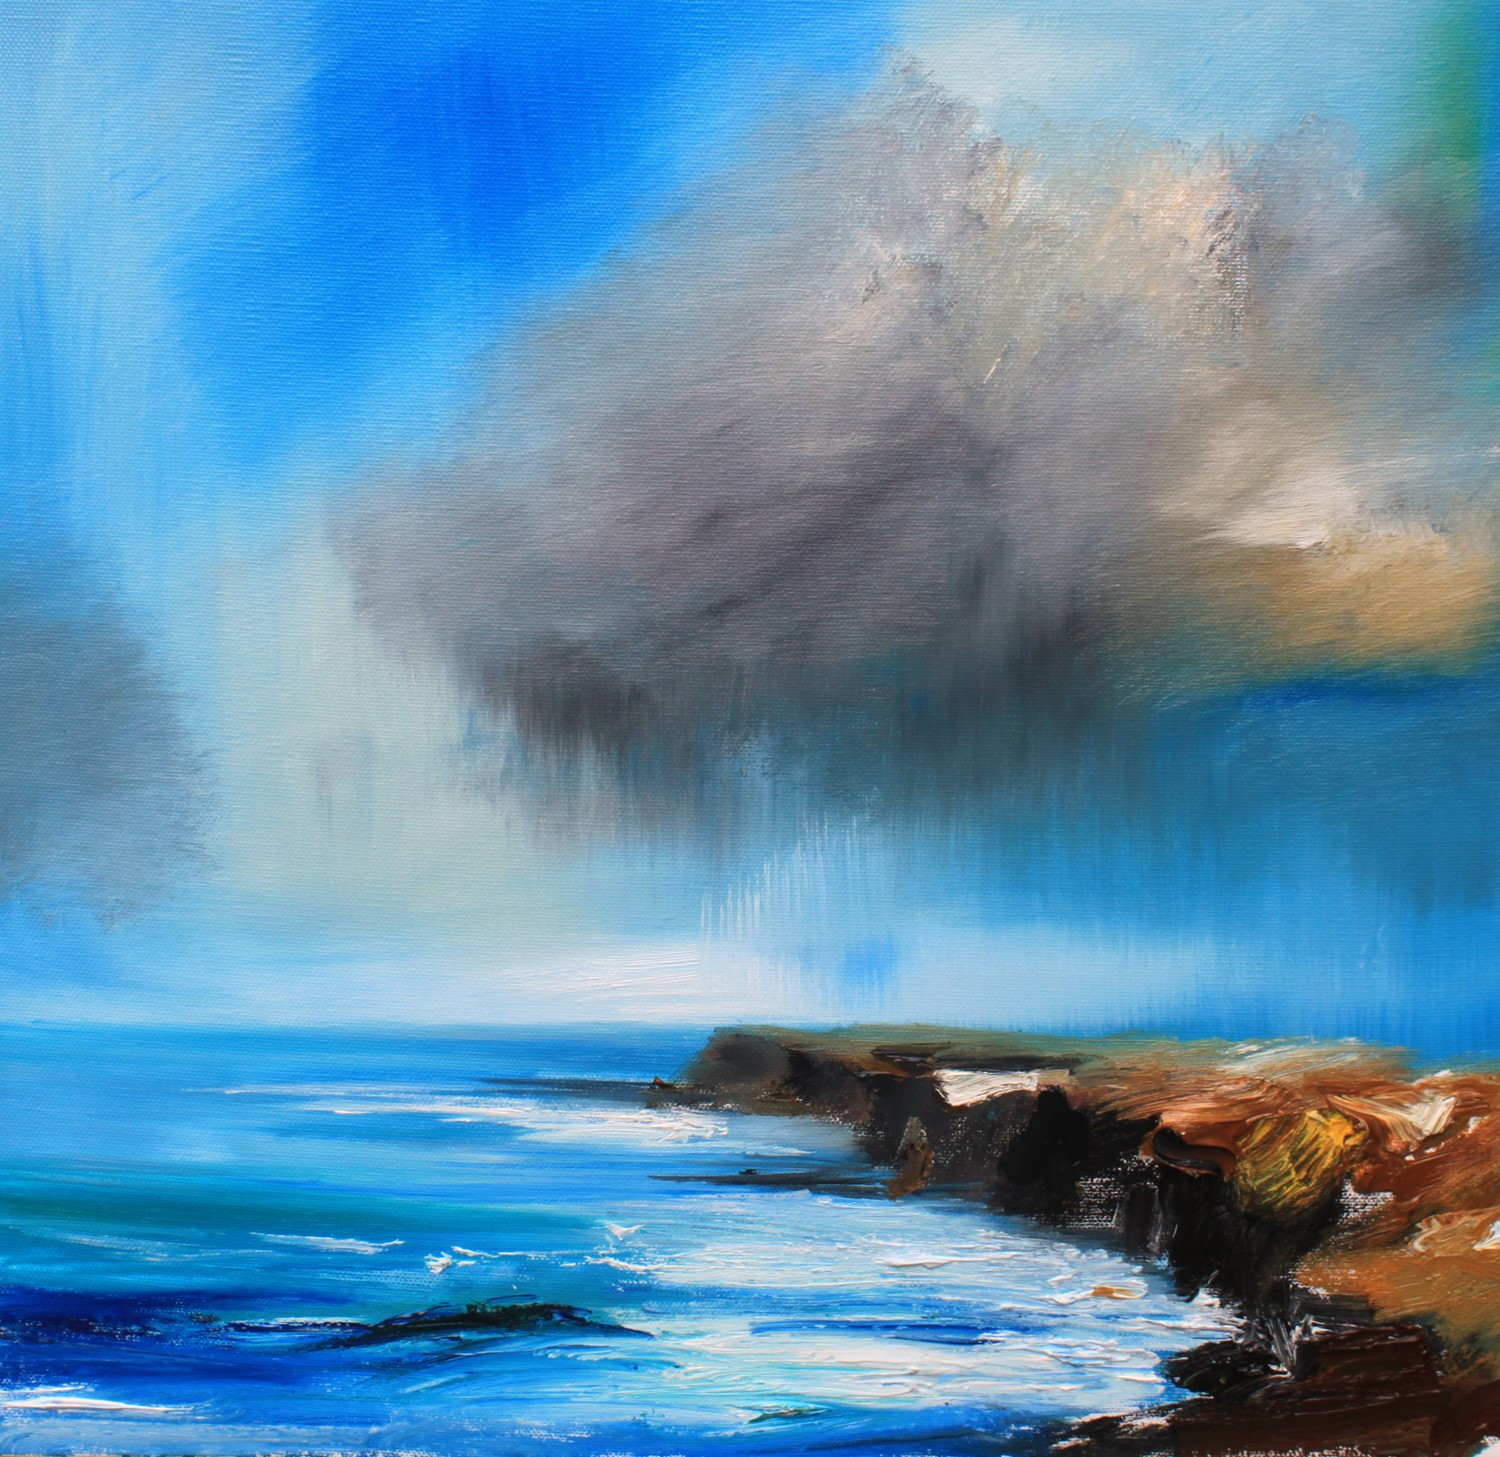 'Sunshine and Showers' by artist Rosanne Barr